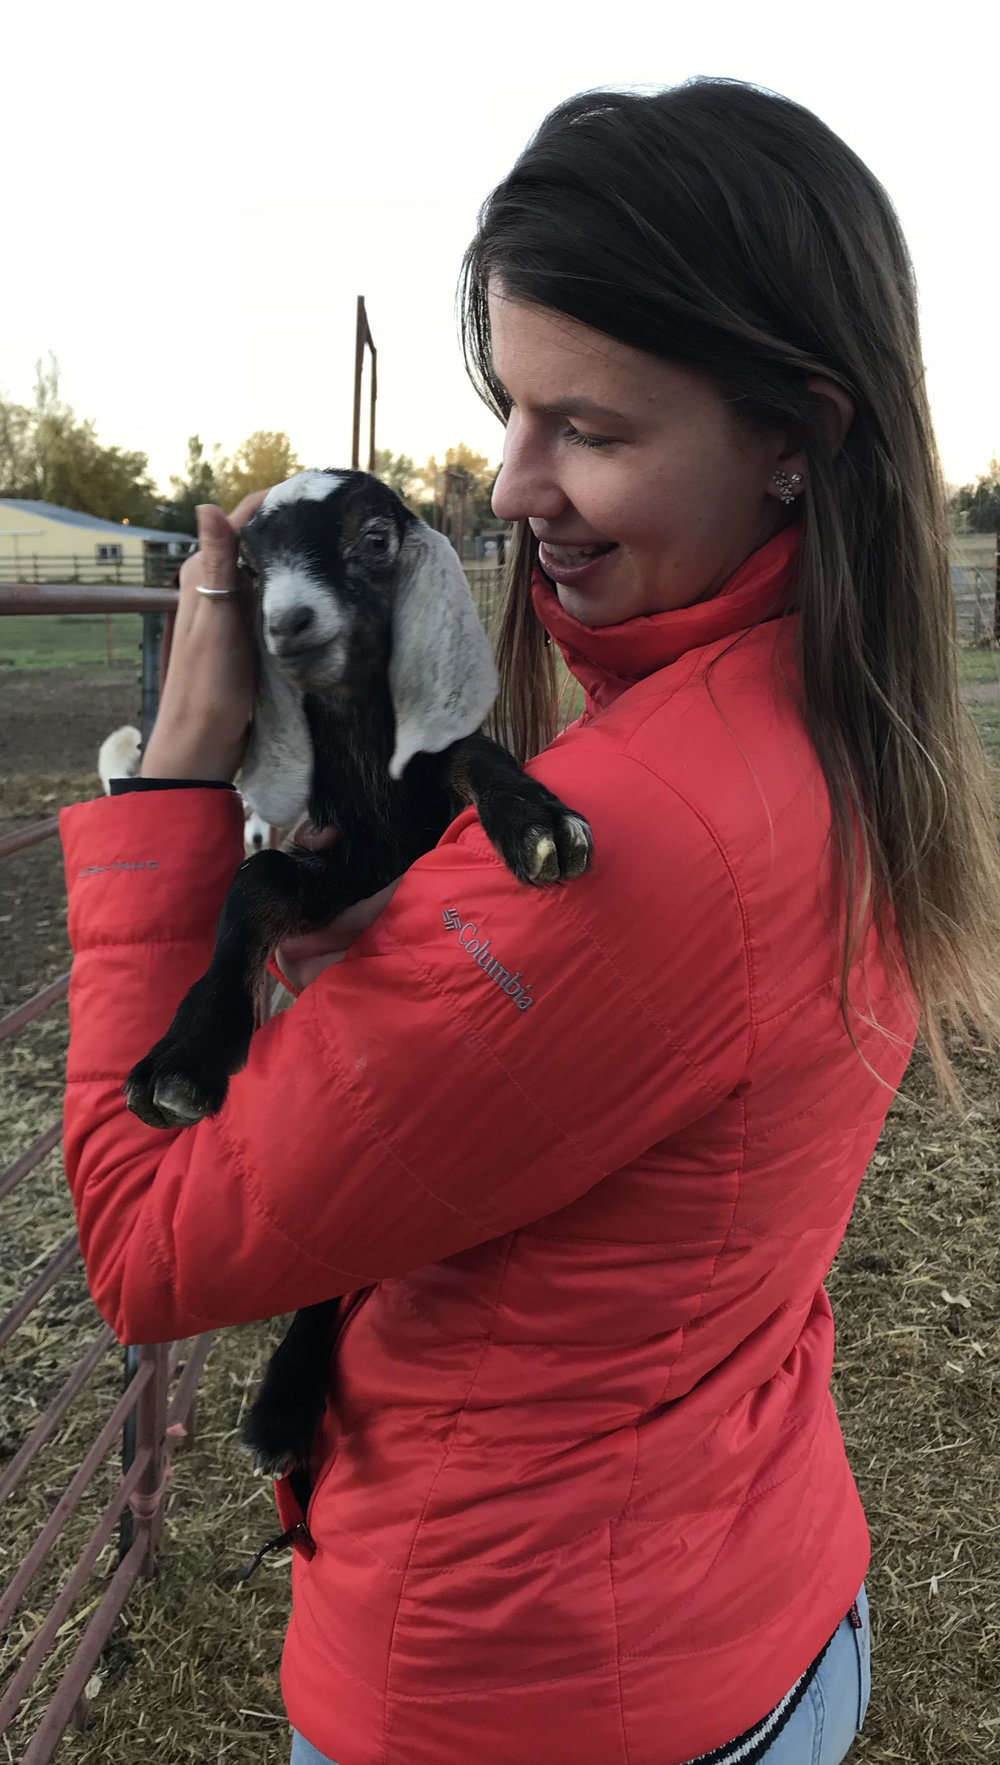 Visit your local farm, and maybe you too and play with baby goats on their birthday!